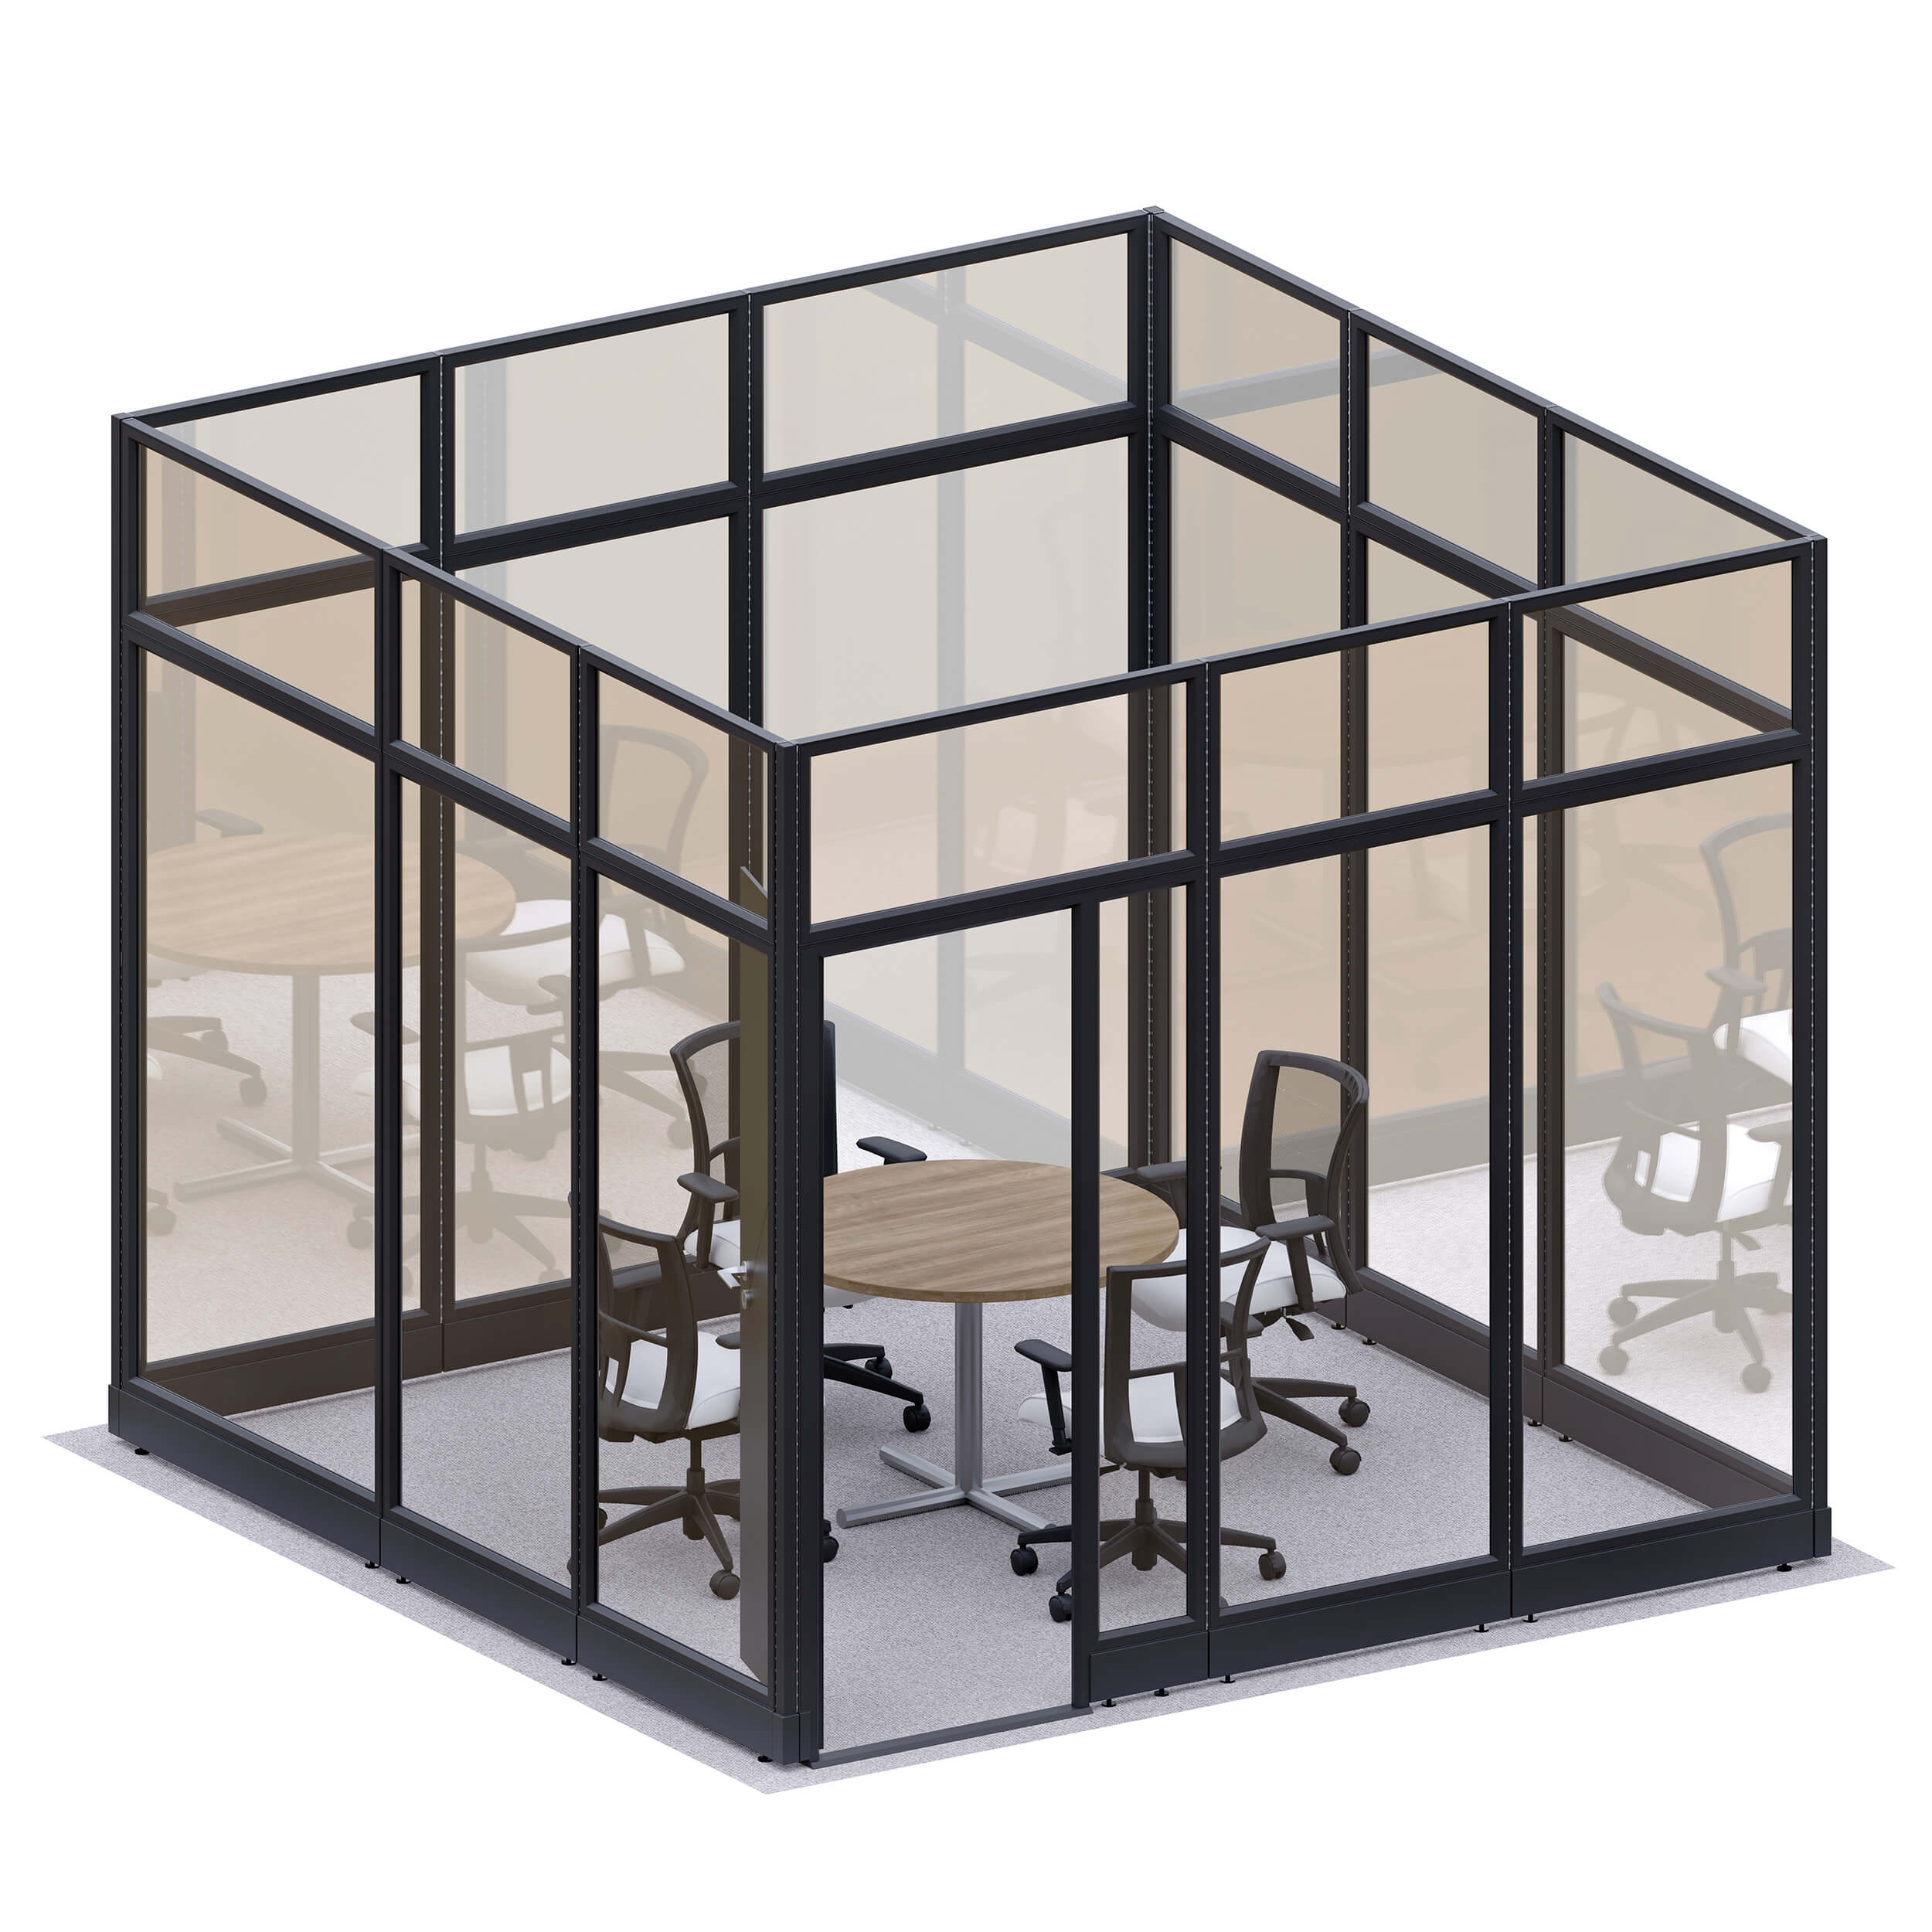 office-walls-glass-wall-conference-room-107h-o-shape.jpg